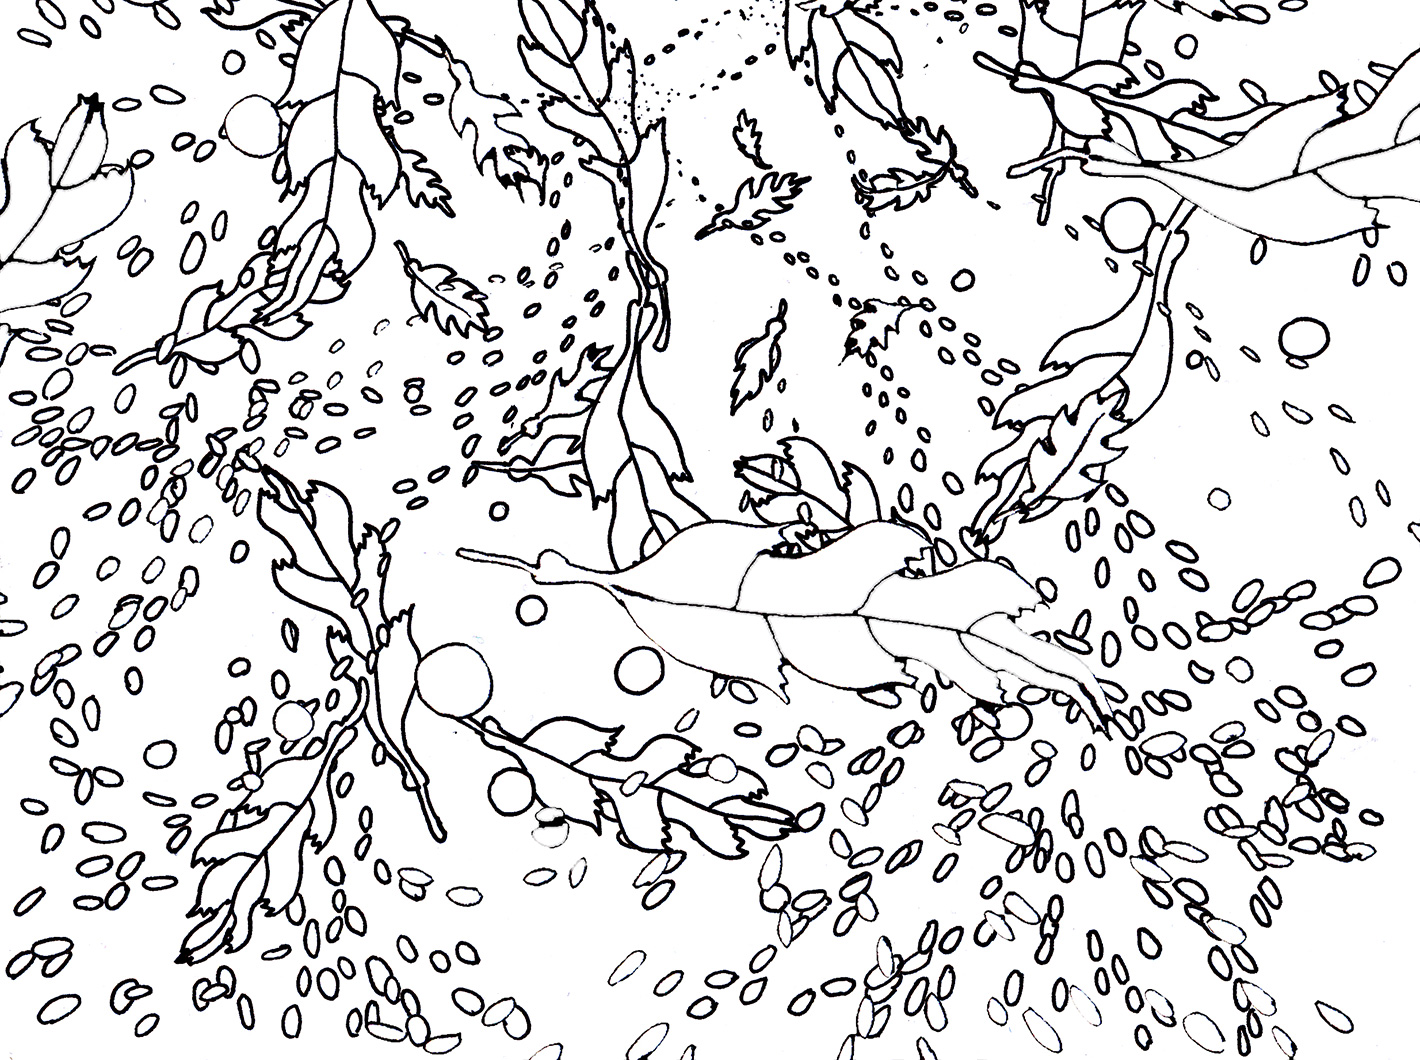 Autumn foliage and snow, repeat pattern in black and white